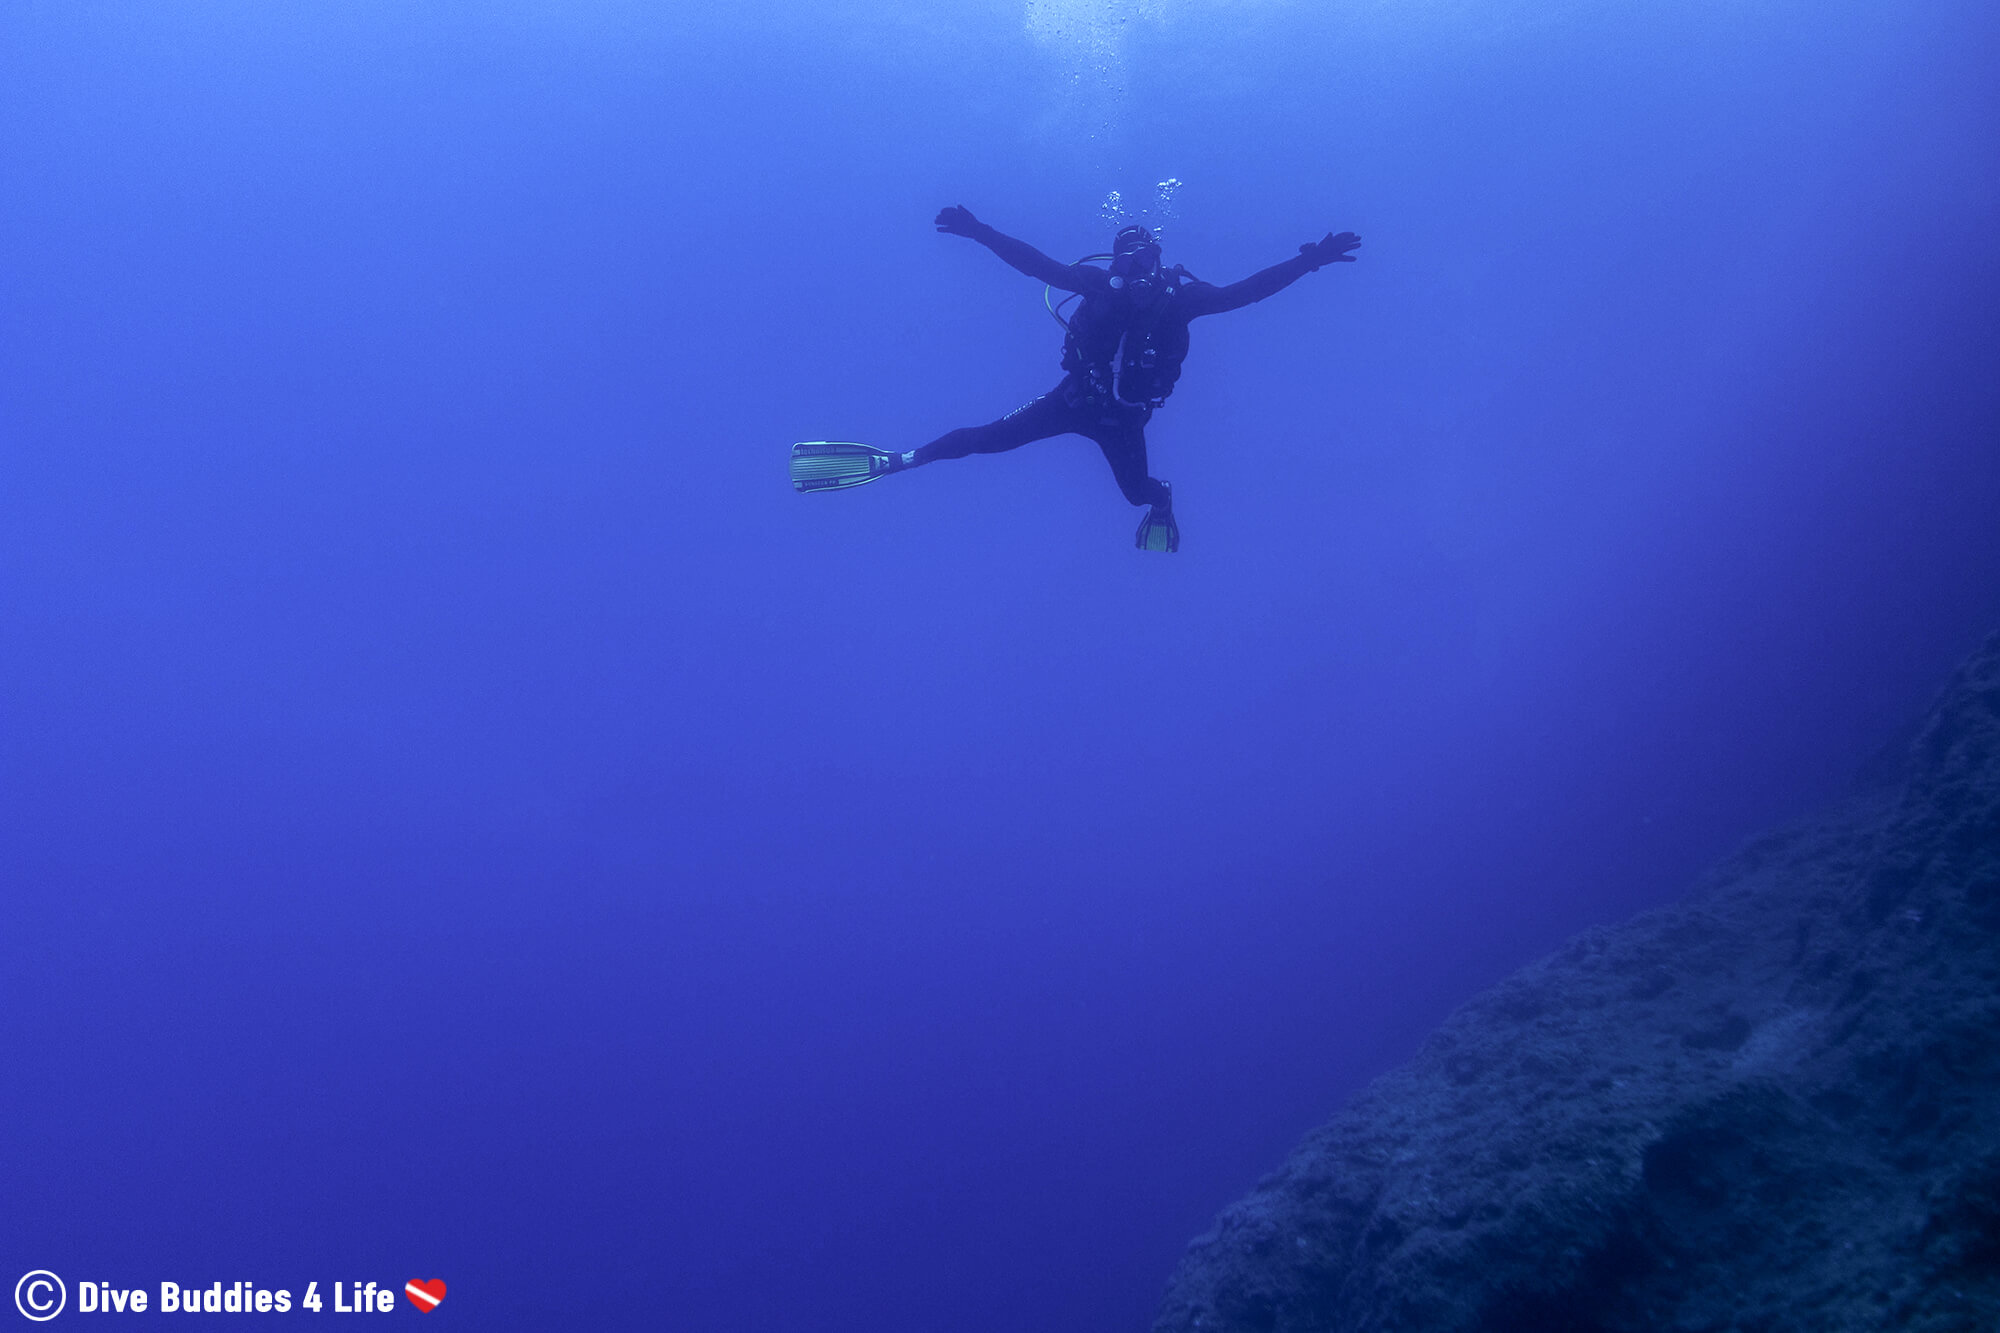 A Scuba Diver Floating In The Mediterranean Sea Of Zakynthos Island, Greece